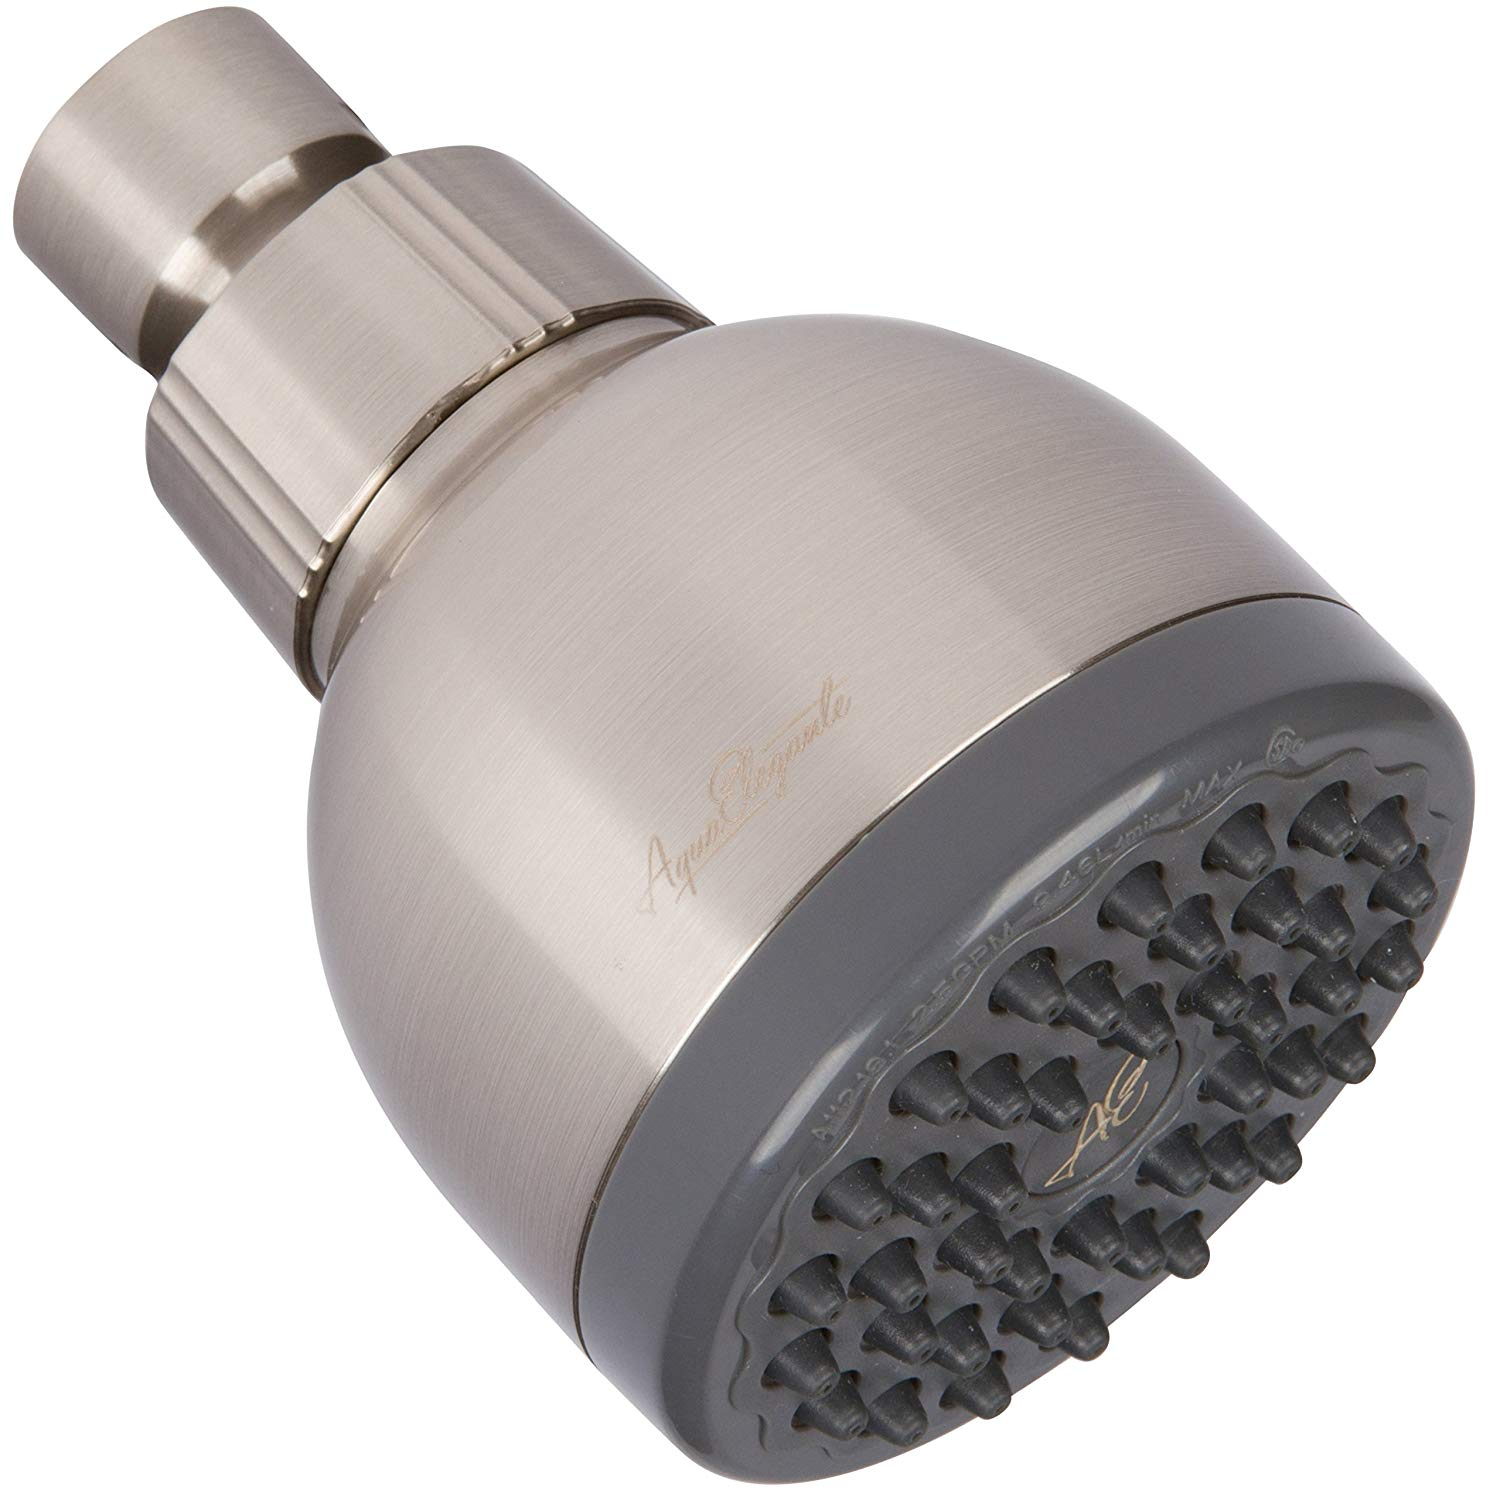 9 Best Showerheads 2019 (Buying Guide)